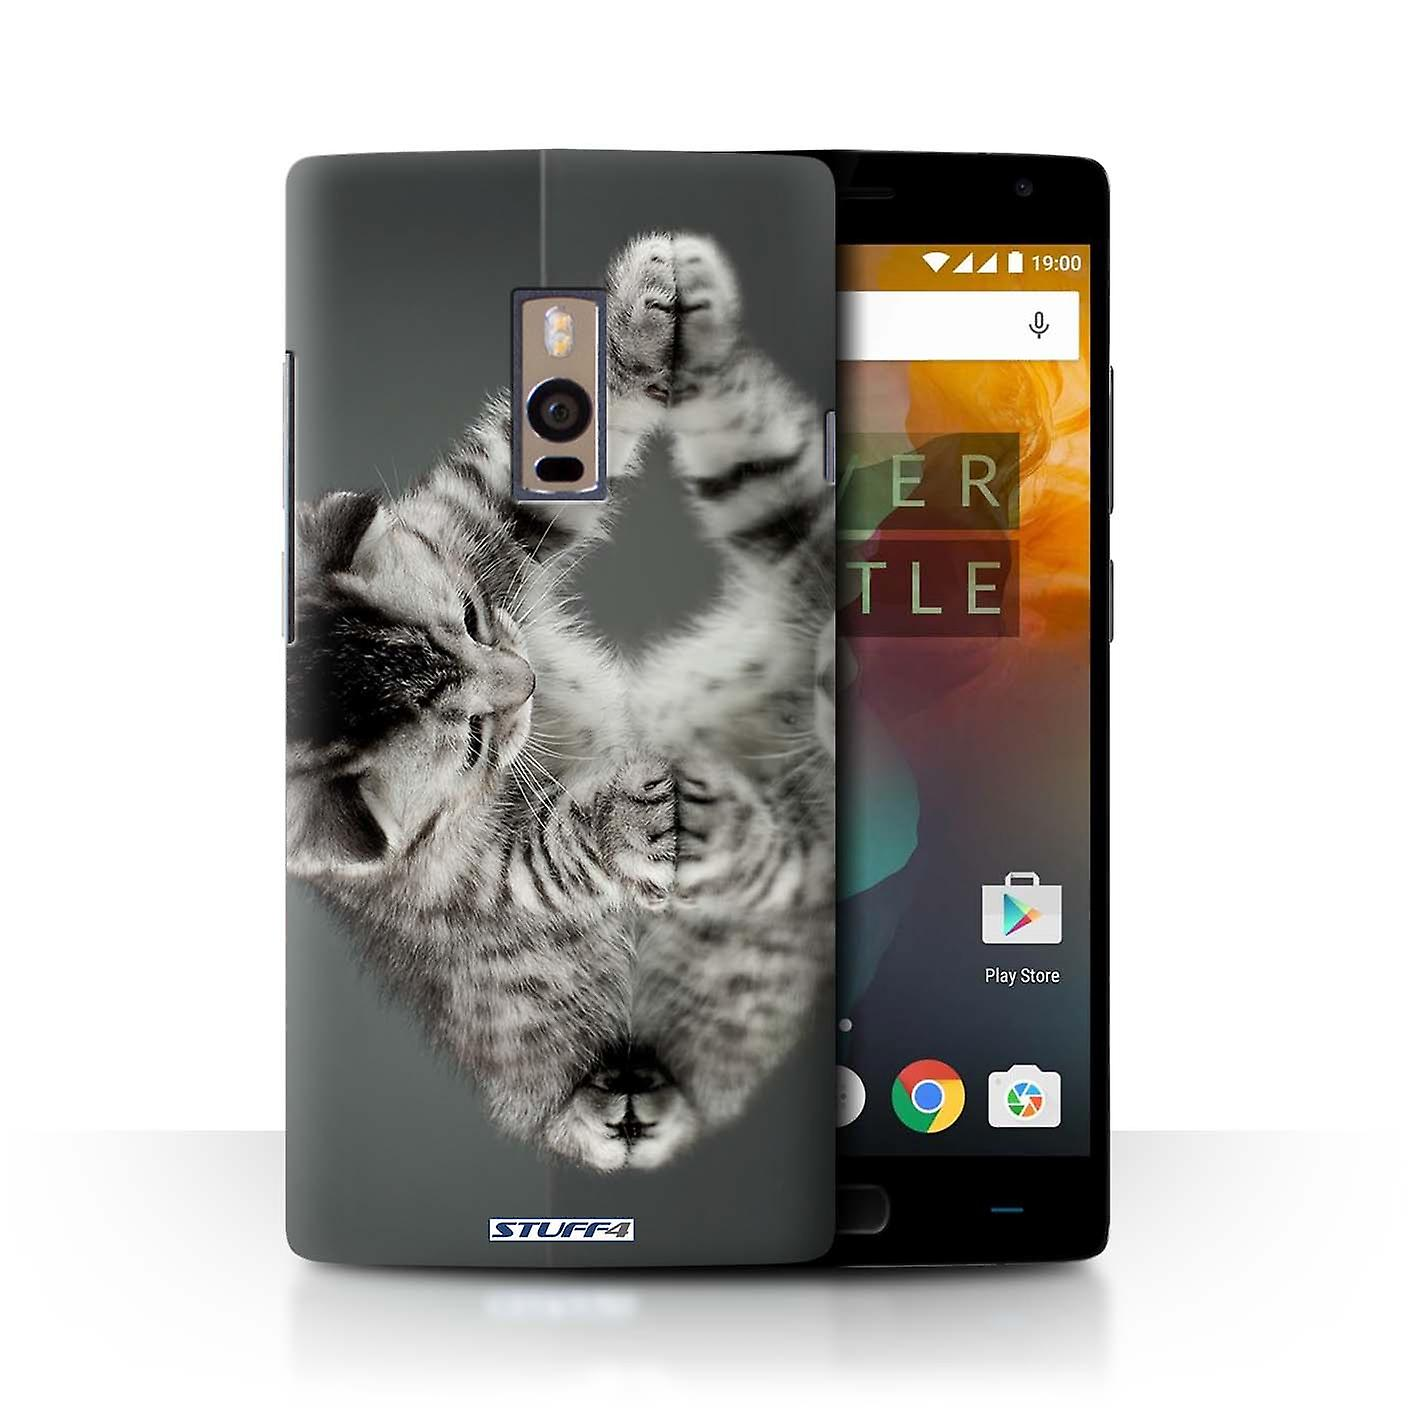 competitive price 269fe 2394b STUFF4 Case/Cover for OnePlus 2/Two/Mirror/Cute Kittens